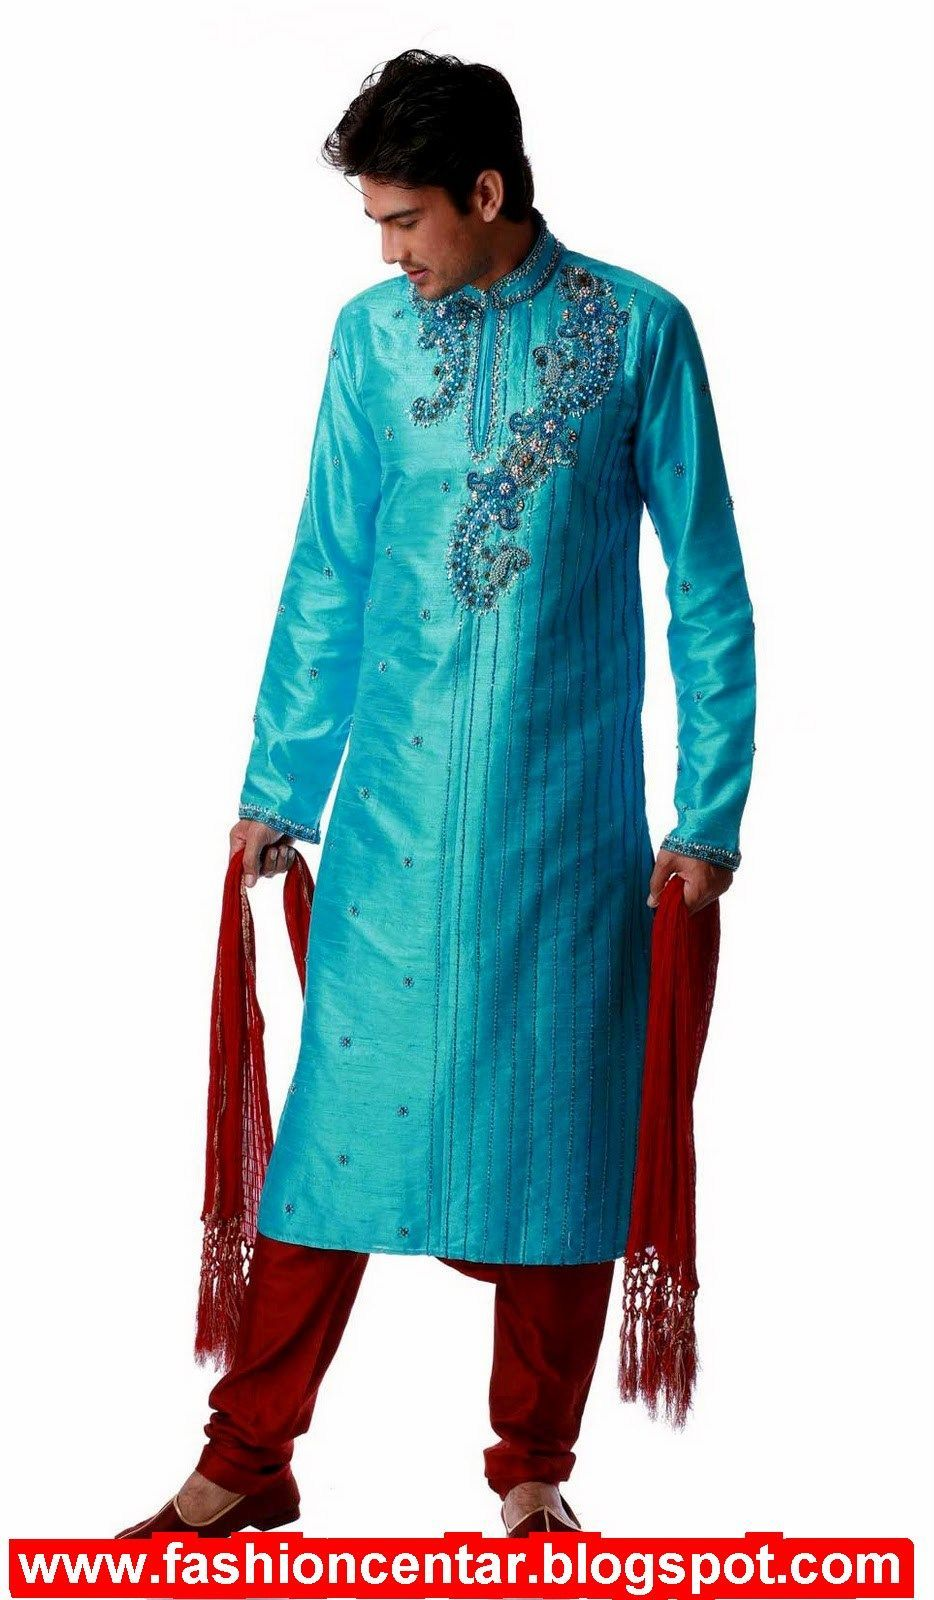 Kurta Pajama for Men-18 Men\'s Kurta Pajama Styles for Wedding ...